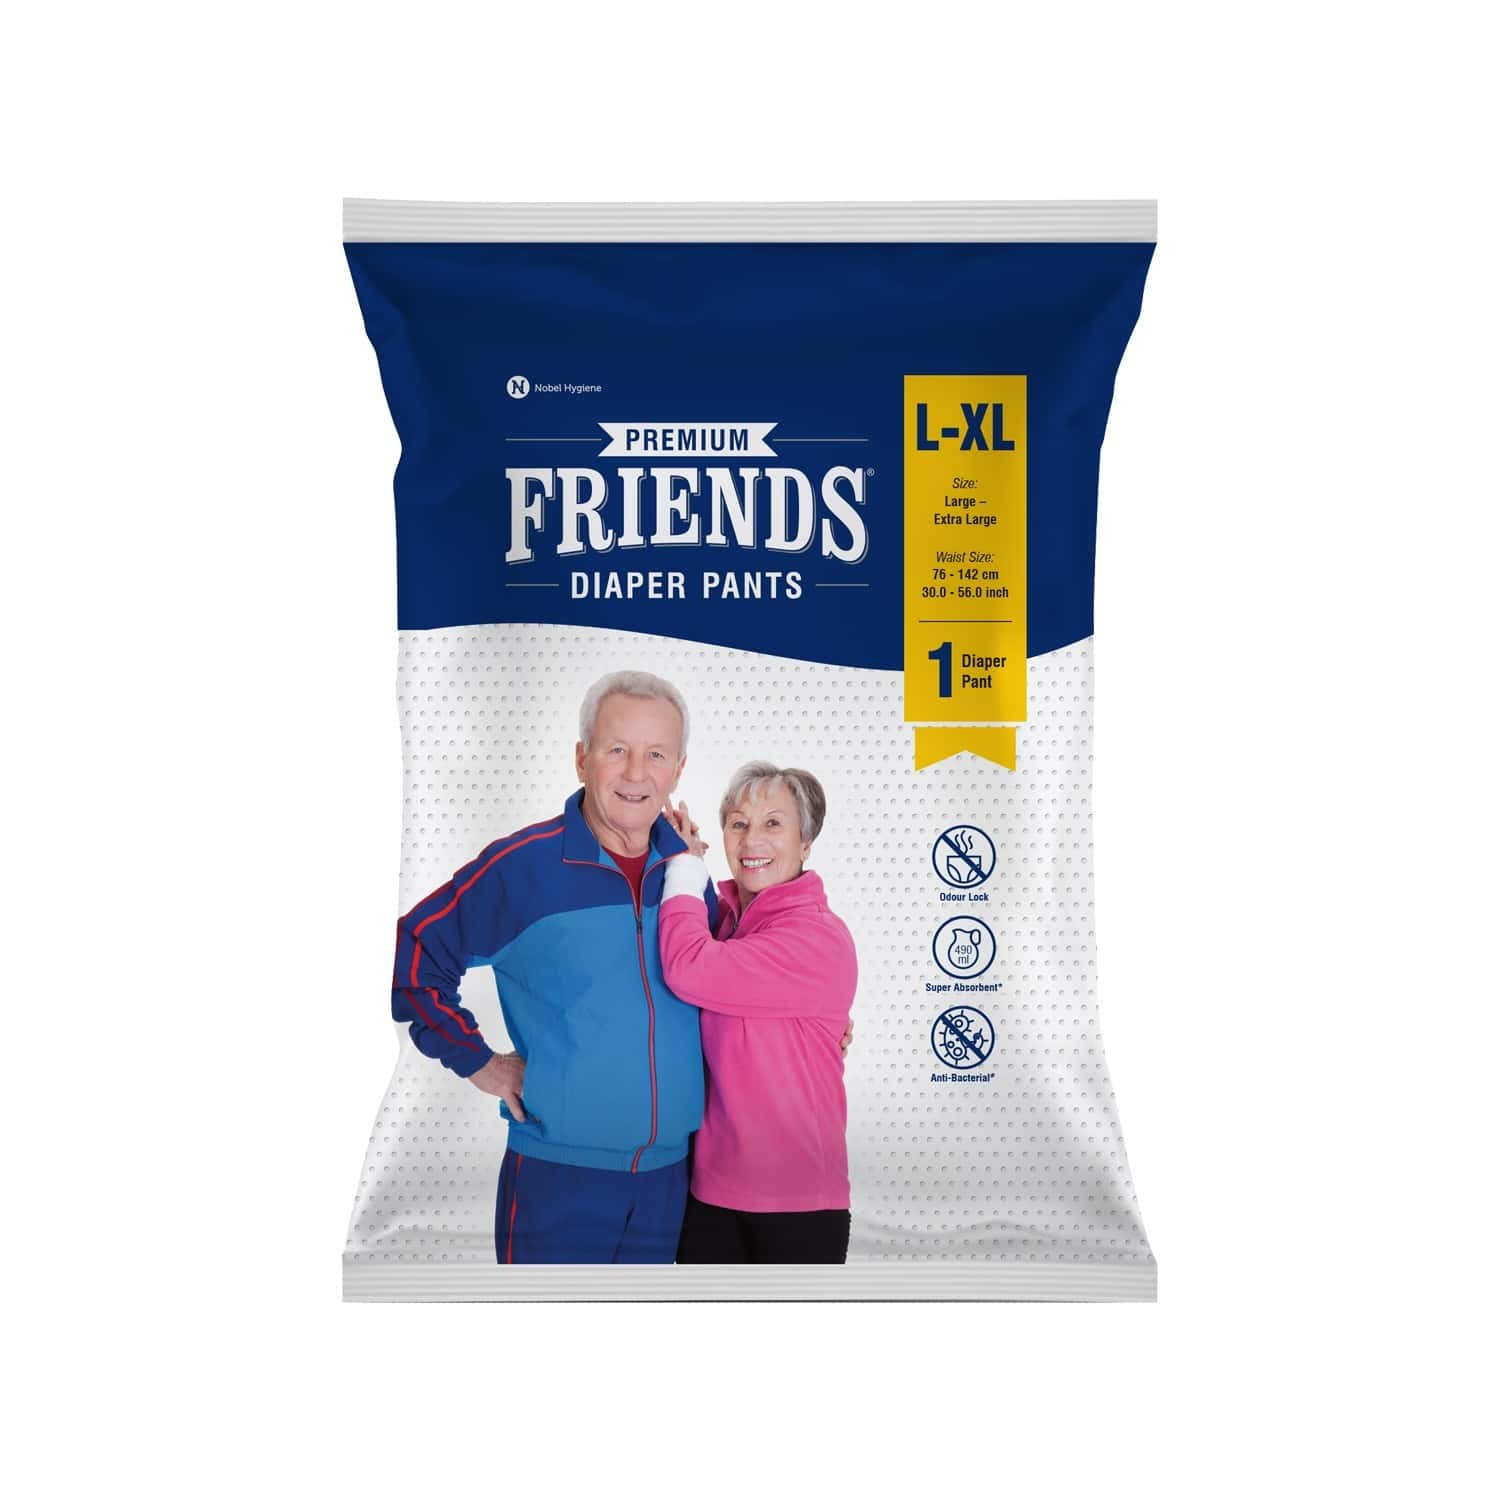 Friends Premium Adult Large Diaper Pants 30-56 In, High Absorbency Flexible Waist Band 1's Pack